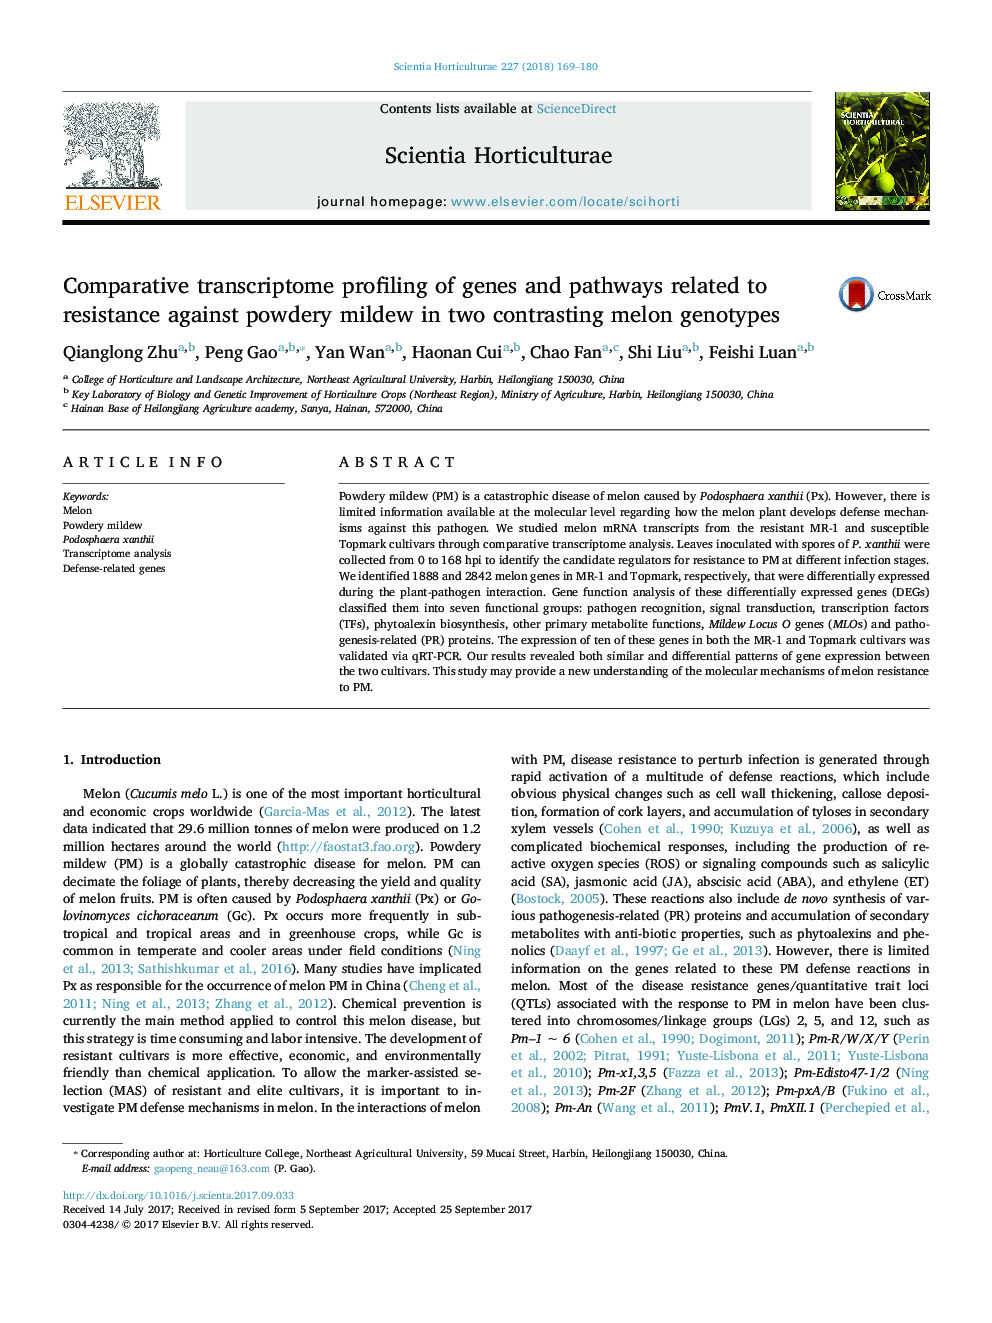 Comparative transcriptome profiling of genes and pathways related to resistance against powdery mildew in two contrasting melon genotypes